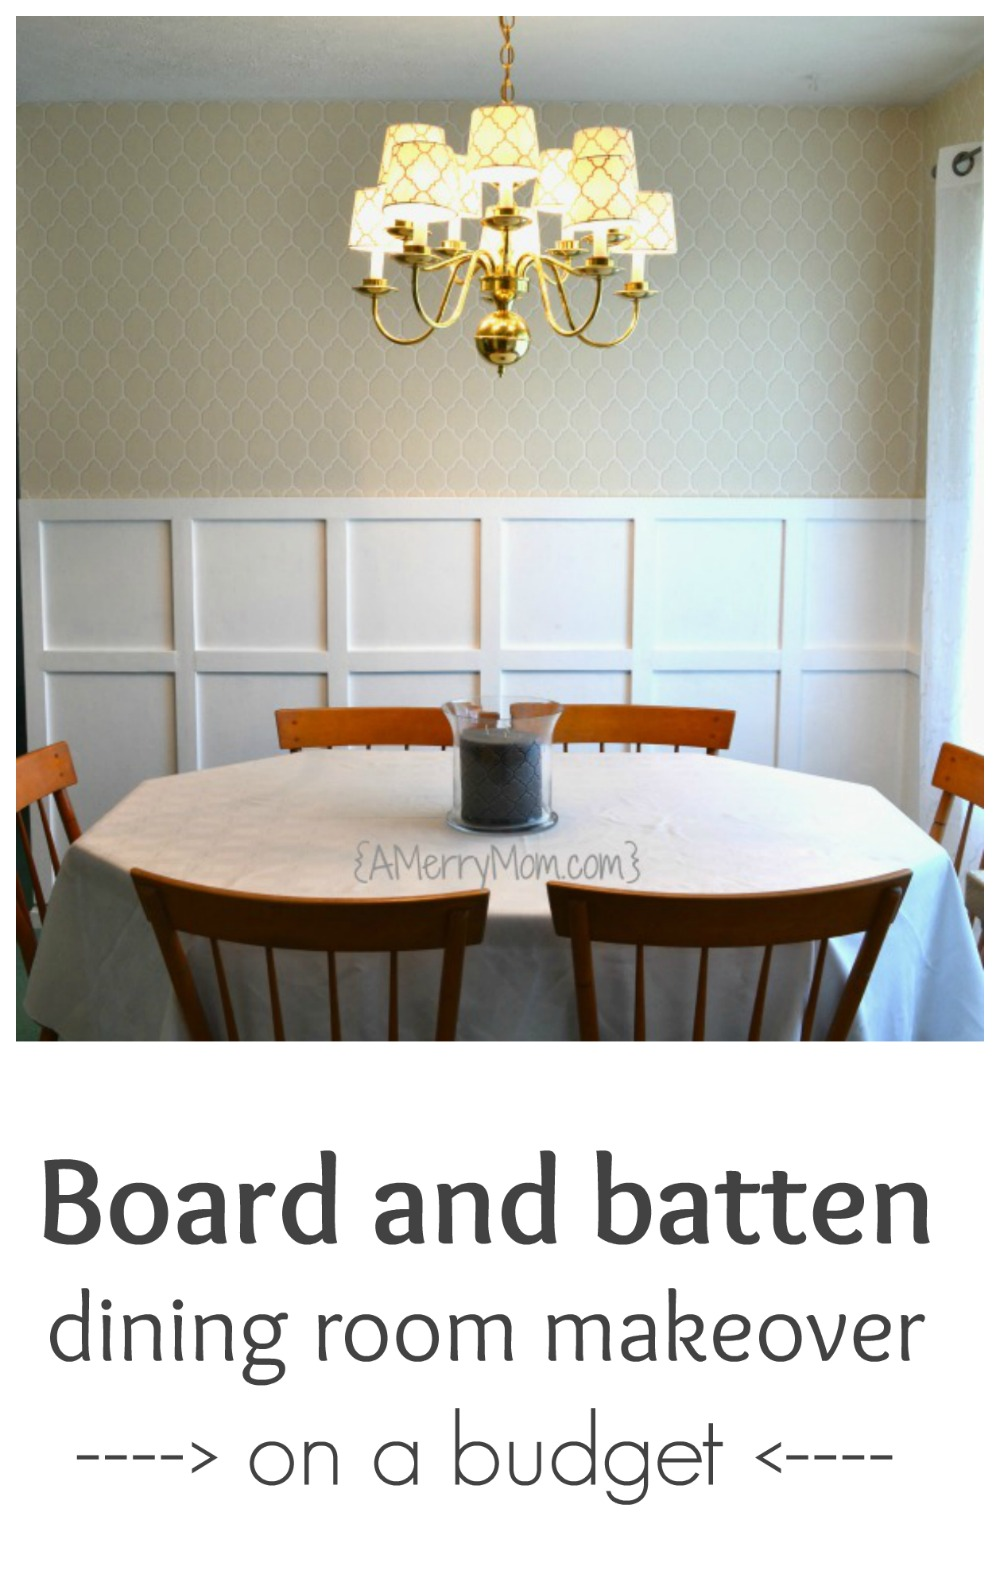 board and batten dining room makeover on a budget